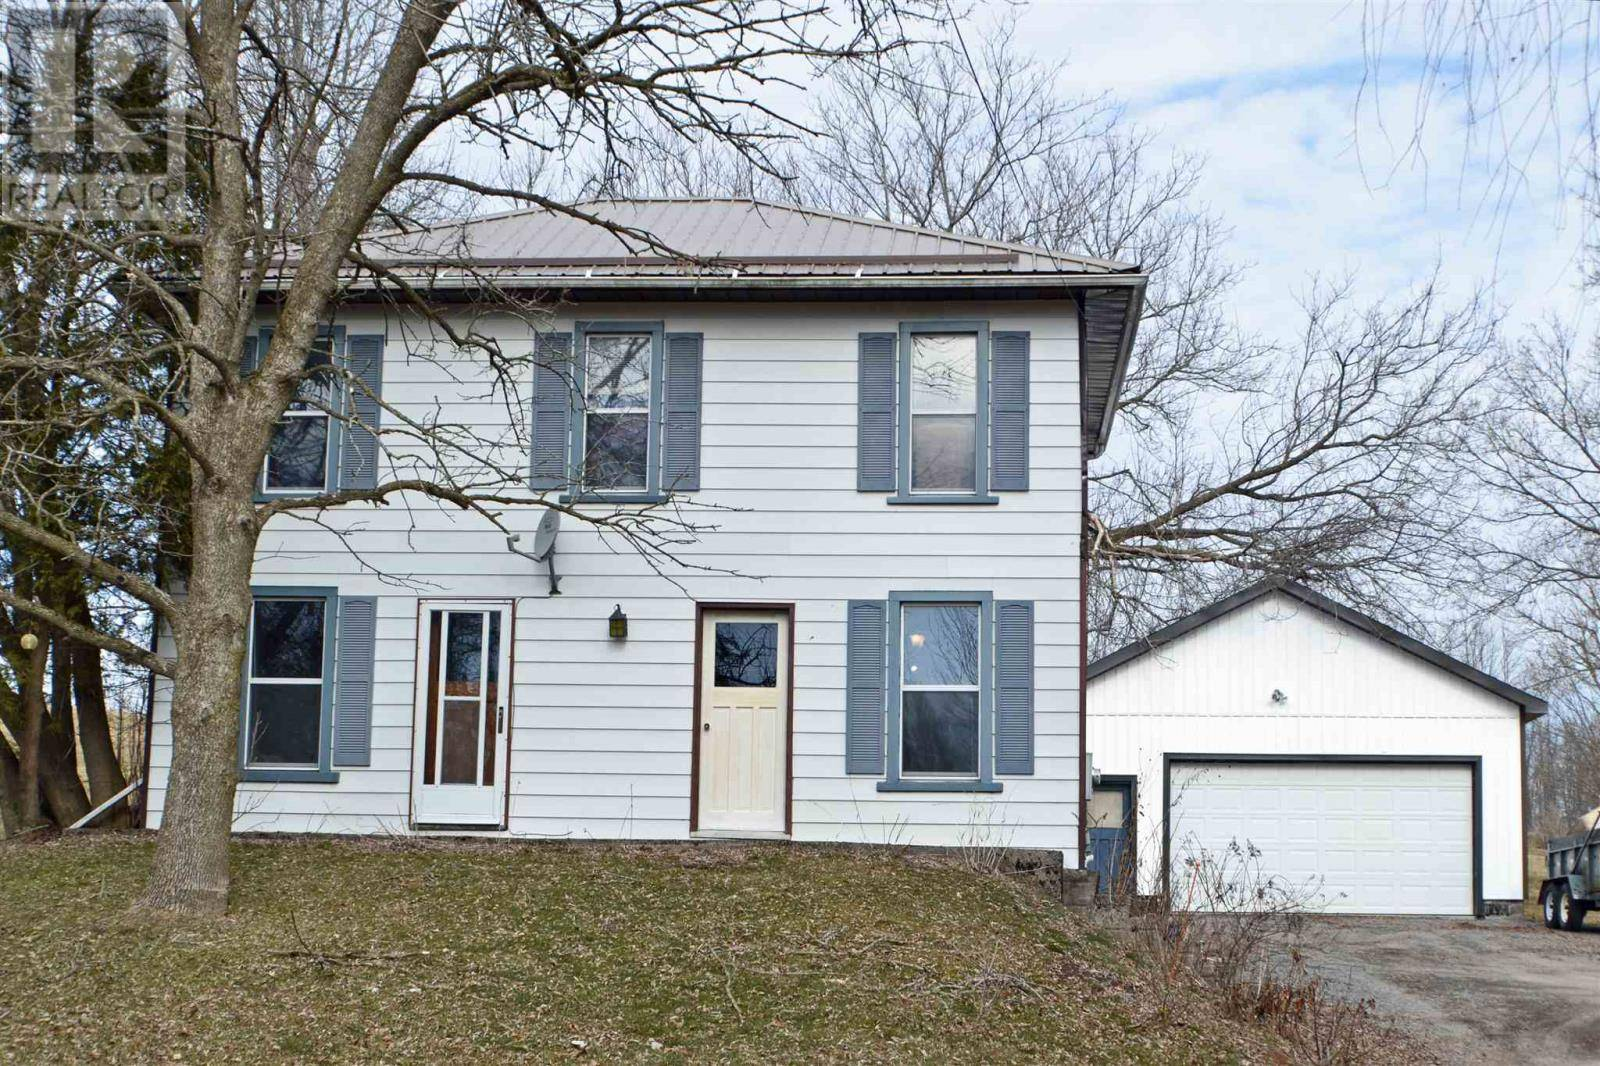 House for sale at 2 County Road 2 Rd W Unit 8833 Greater Napanee Ontario - MLS: K20001535